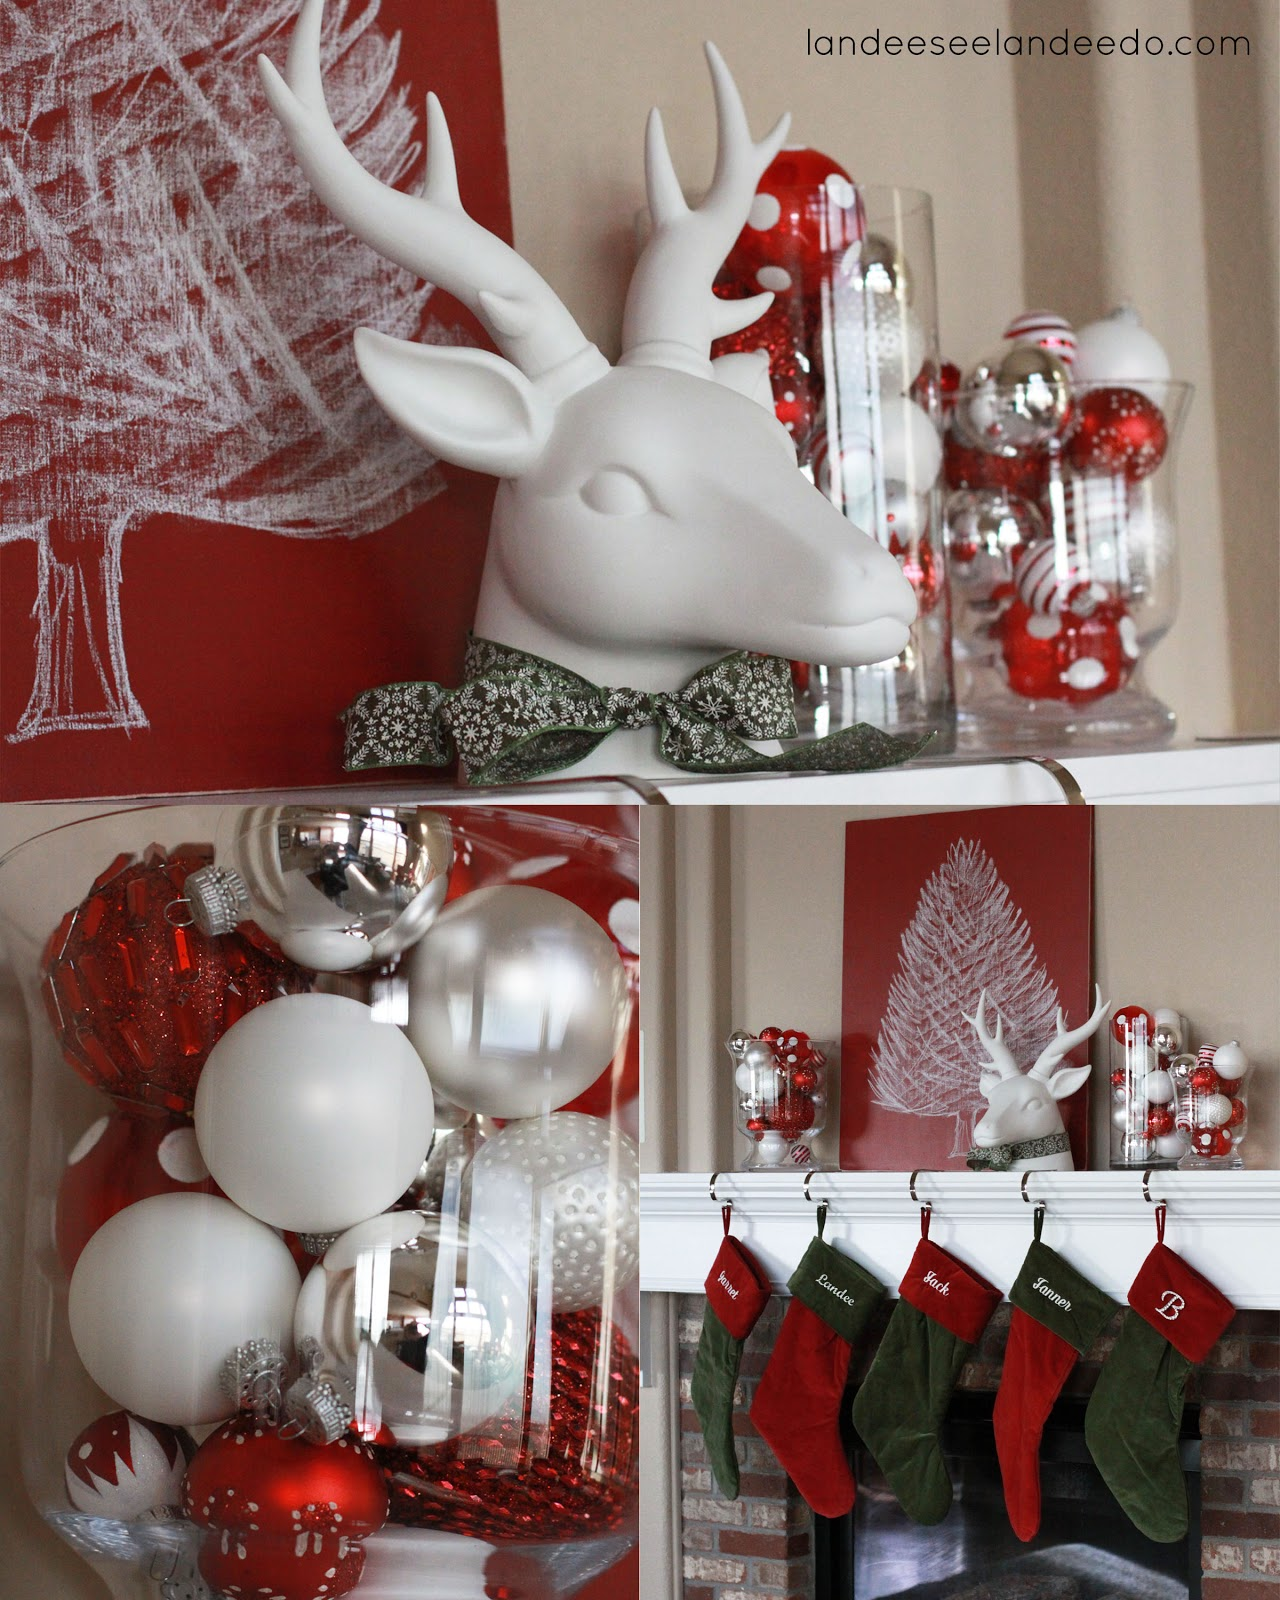 interior-design-ideas-awesome-country-christmas-home-decoration-for-mantel-with-white-silver-and-red-baubles-and-red-green-christmas-stocking-awesome-country-christmas-home-decor